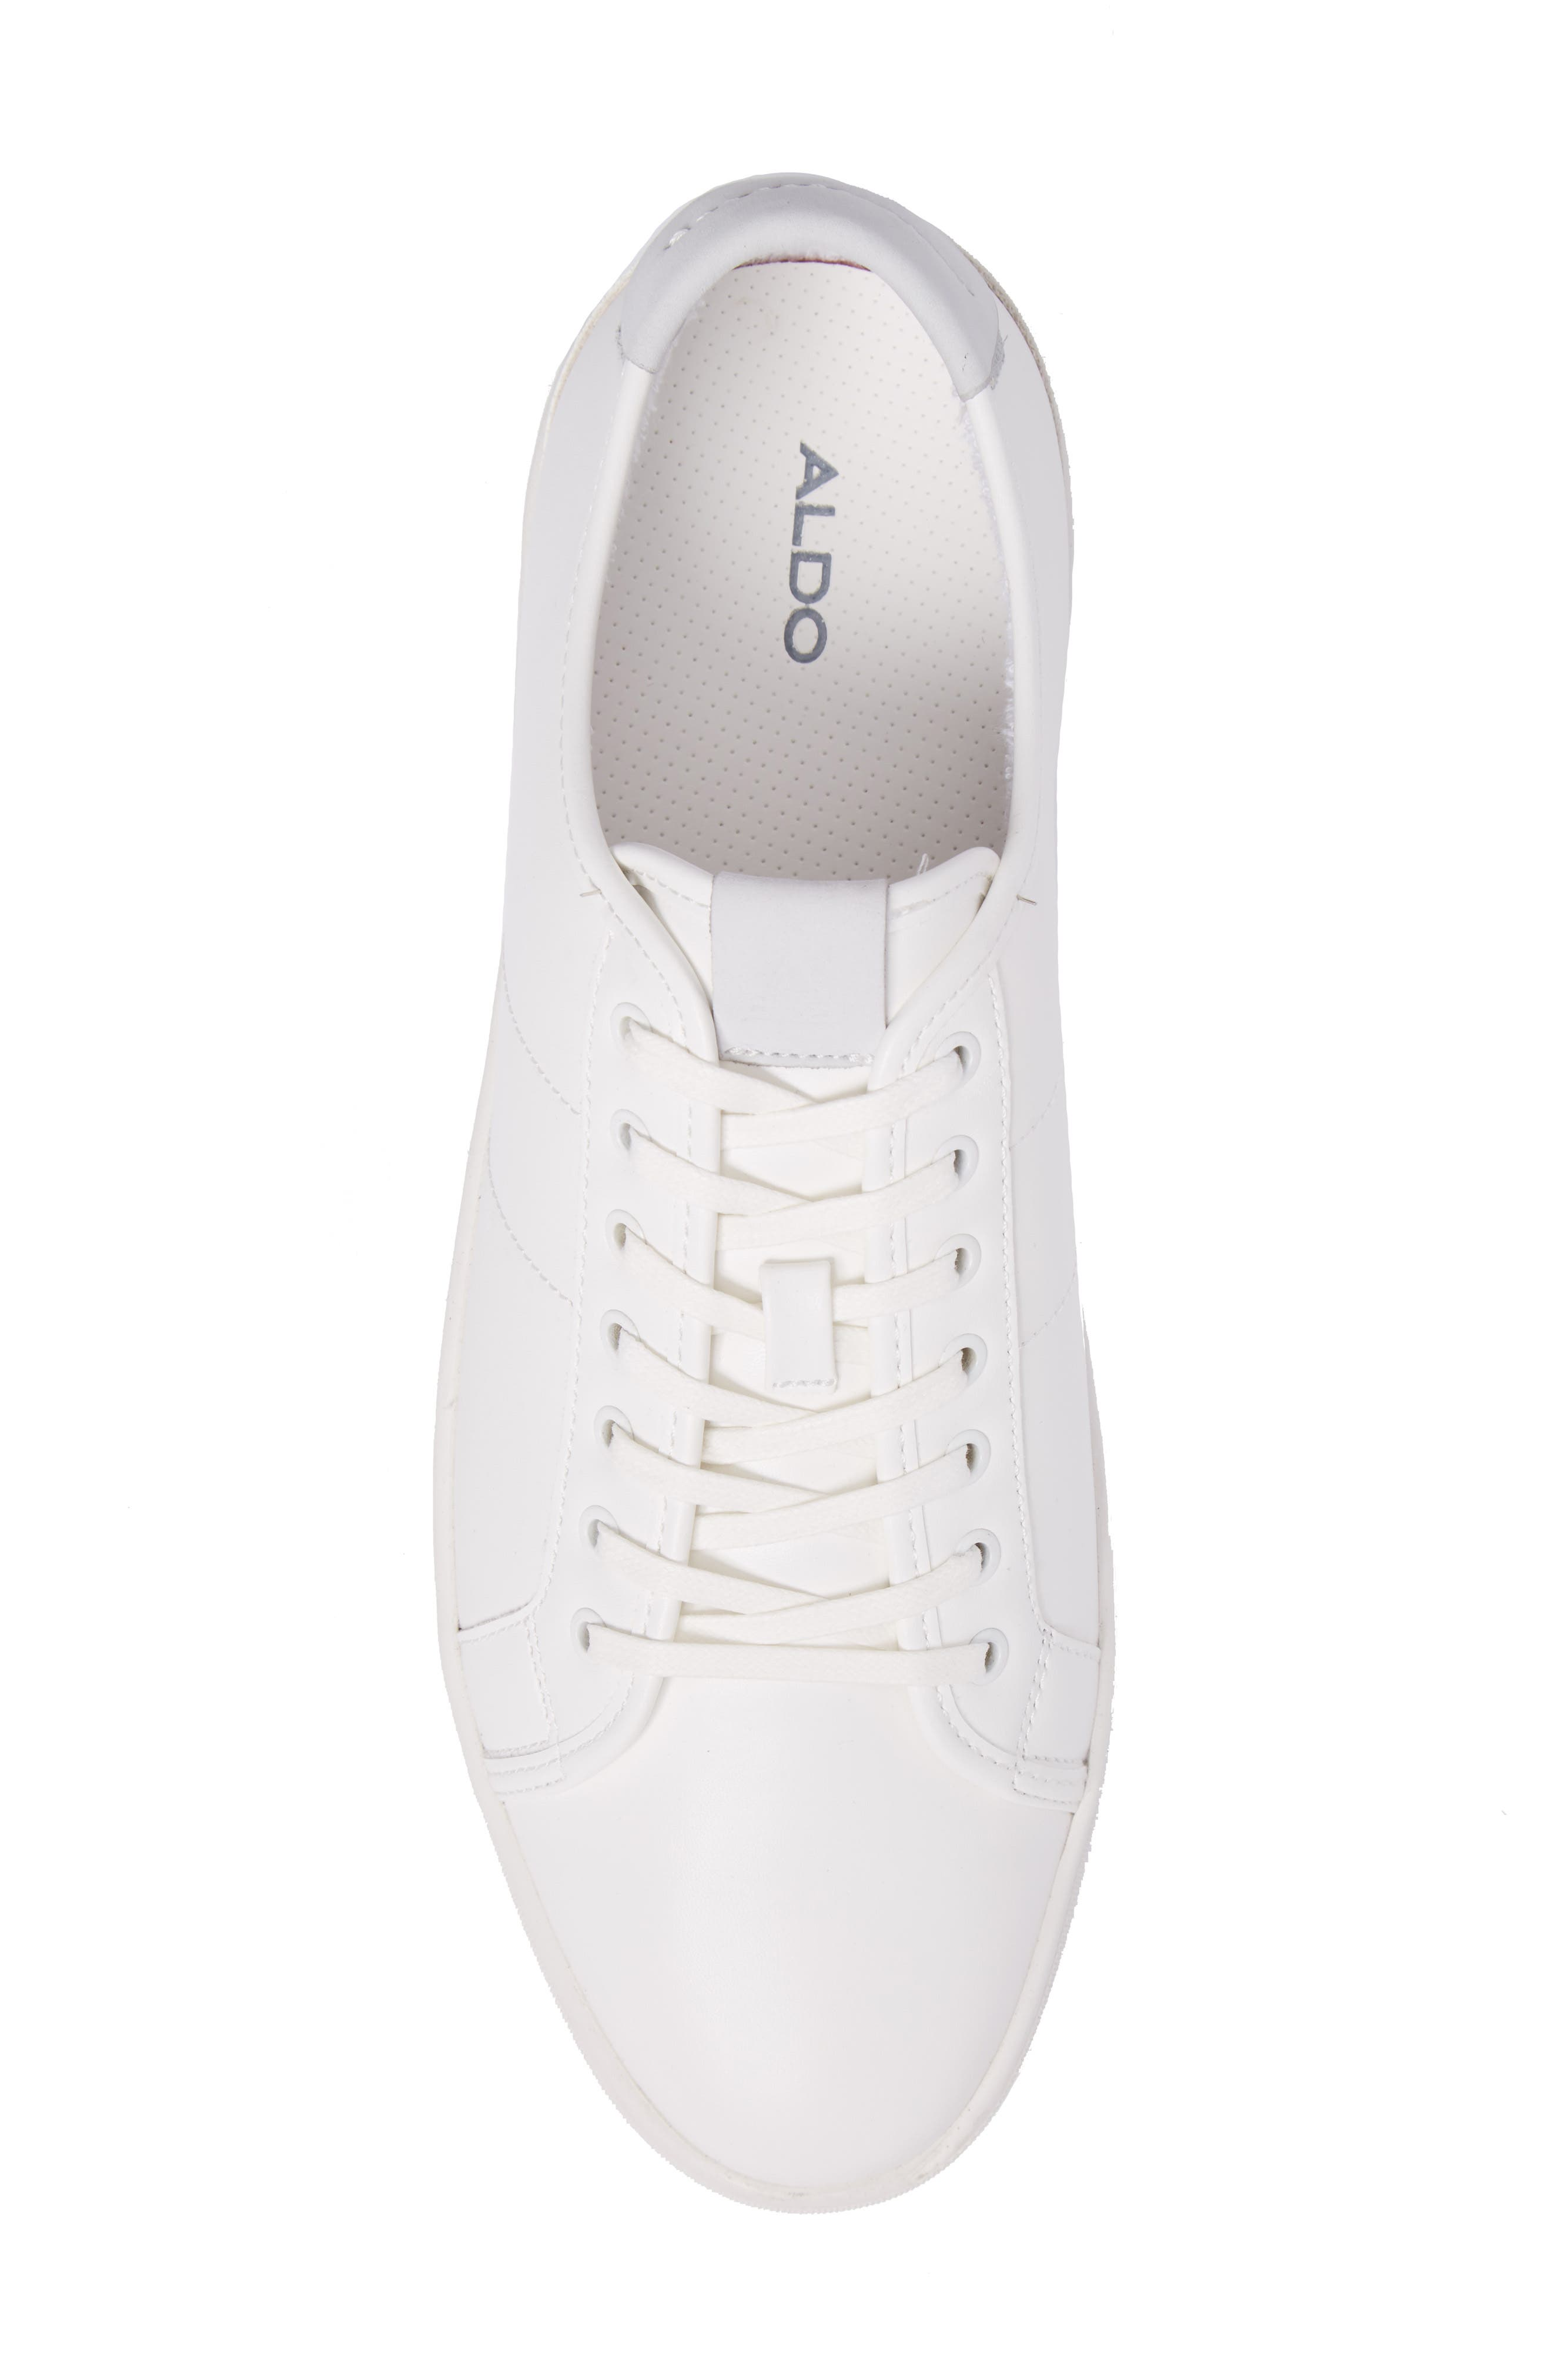 Delello Low-Top Sneaker,                             Alternate thumbnail 5, color,                             White